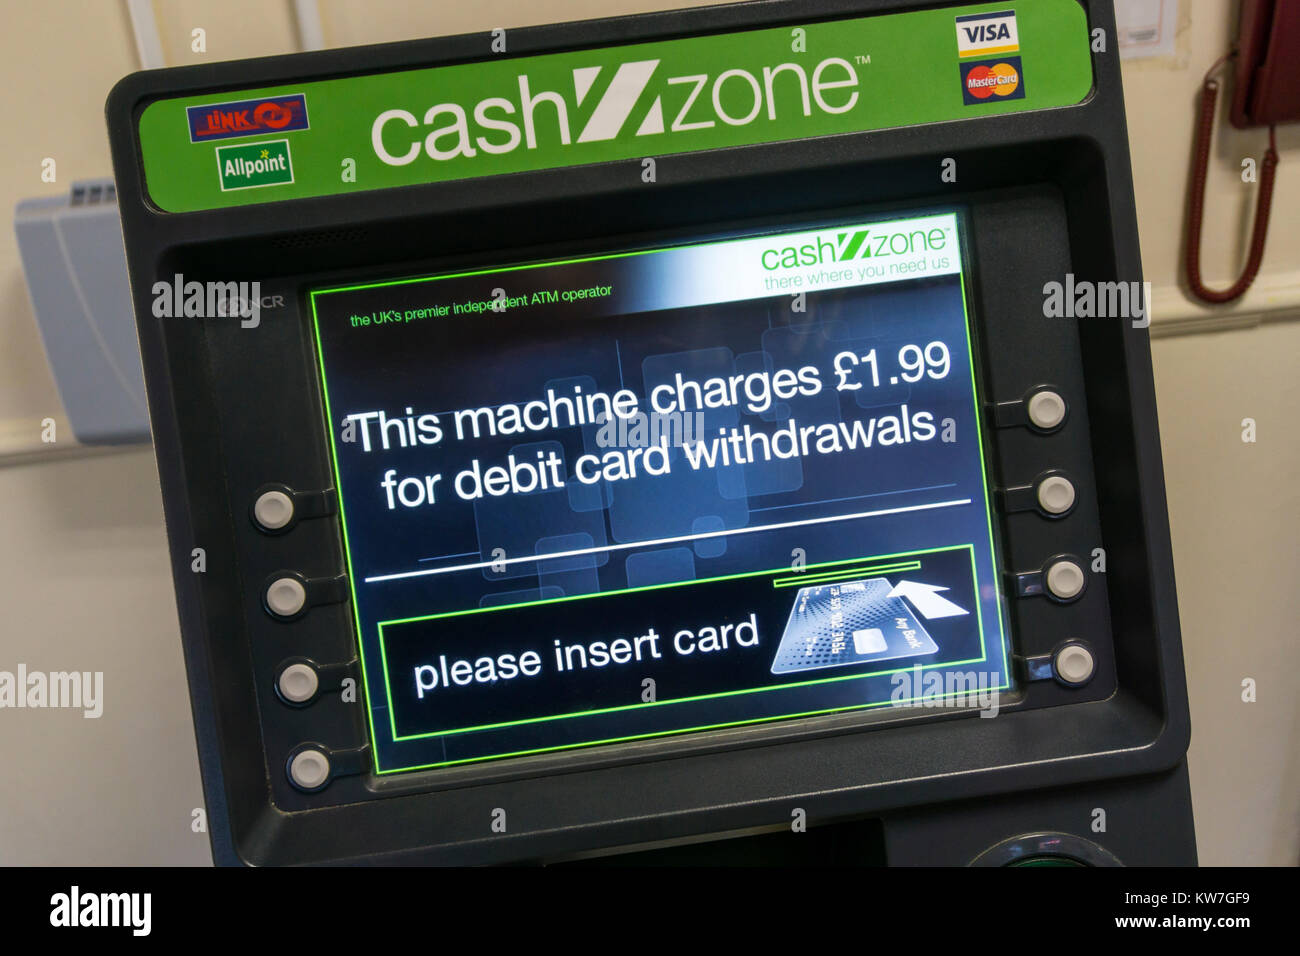 A CashZone ATM in a motorway service station warns that there is a £1.99 charge for cash withdrawals by debit - Stock Image